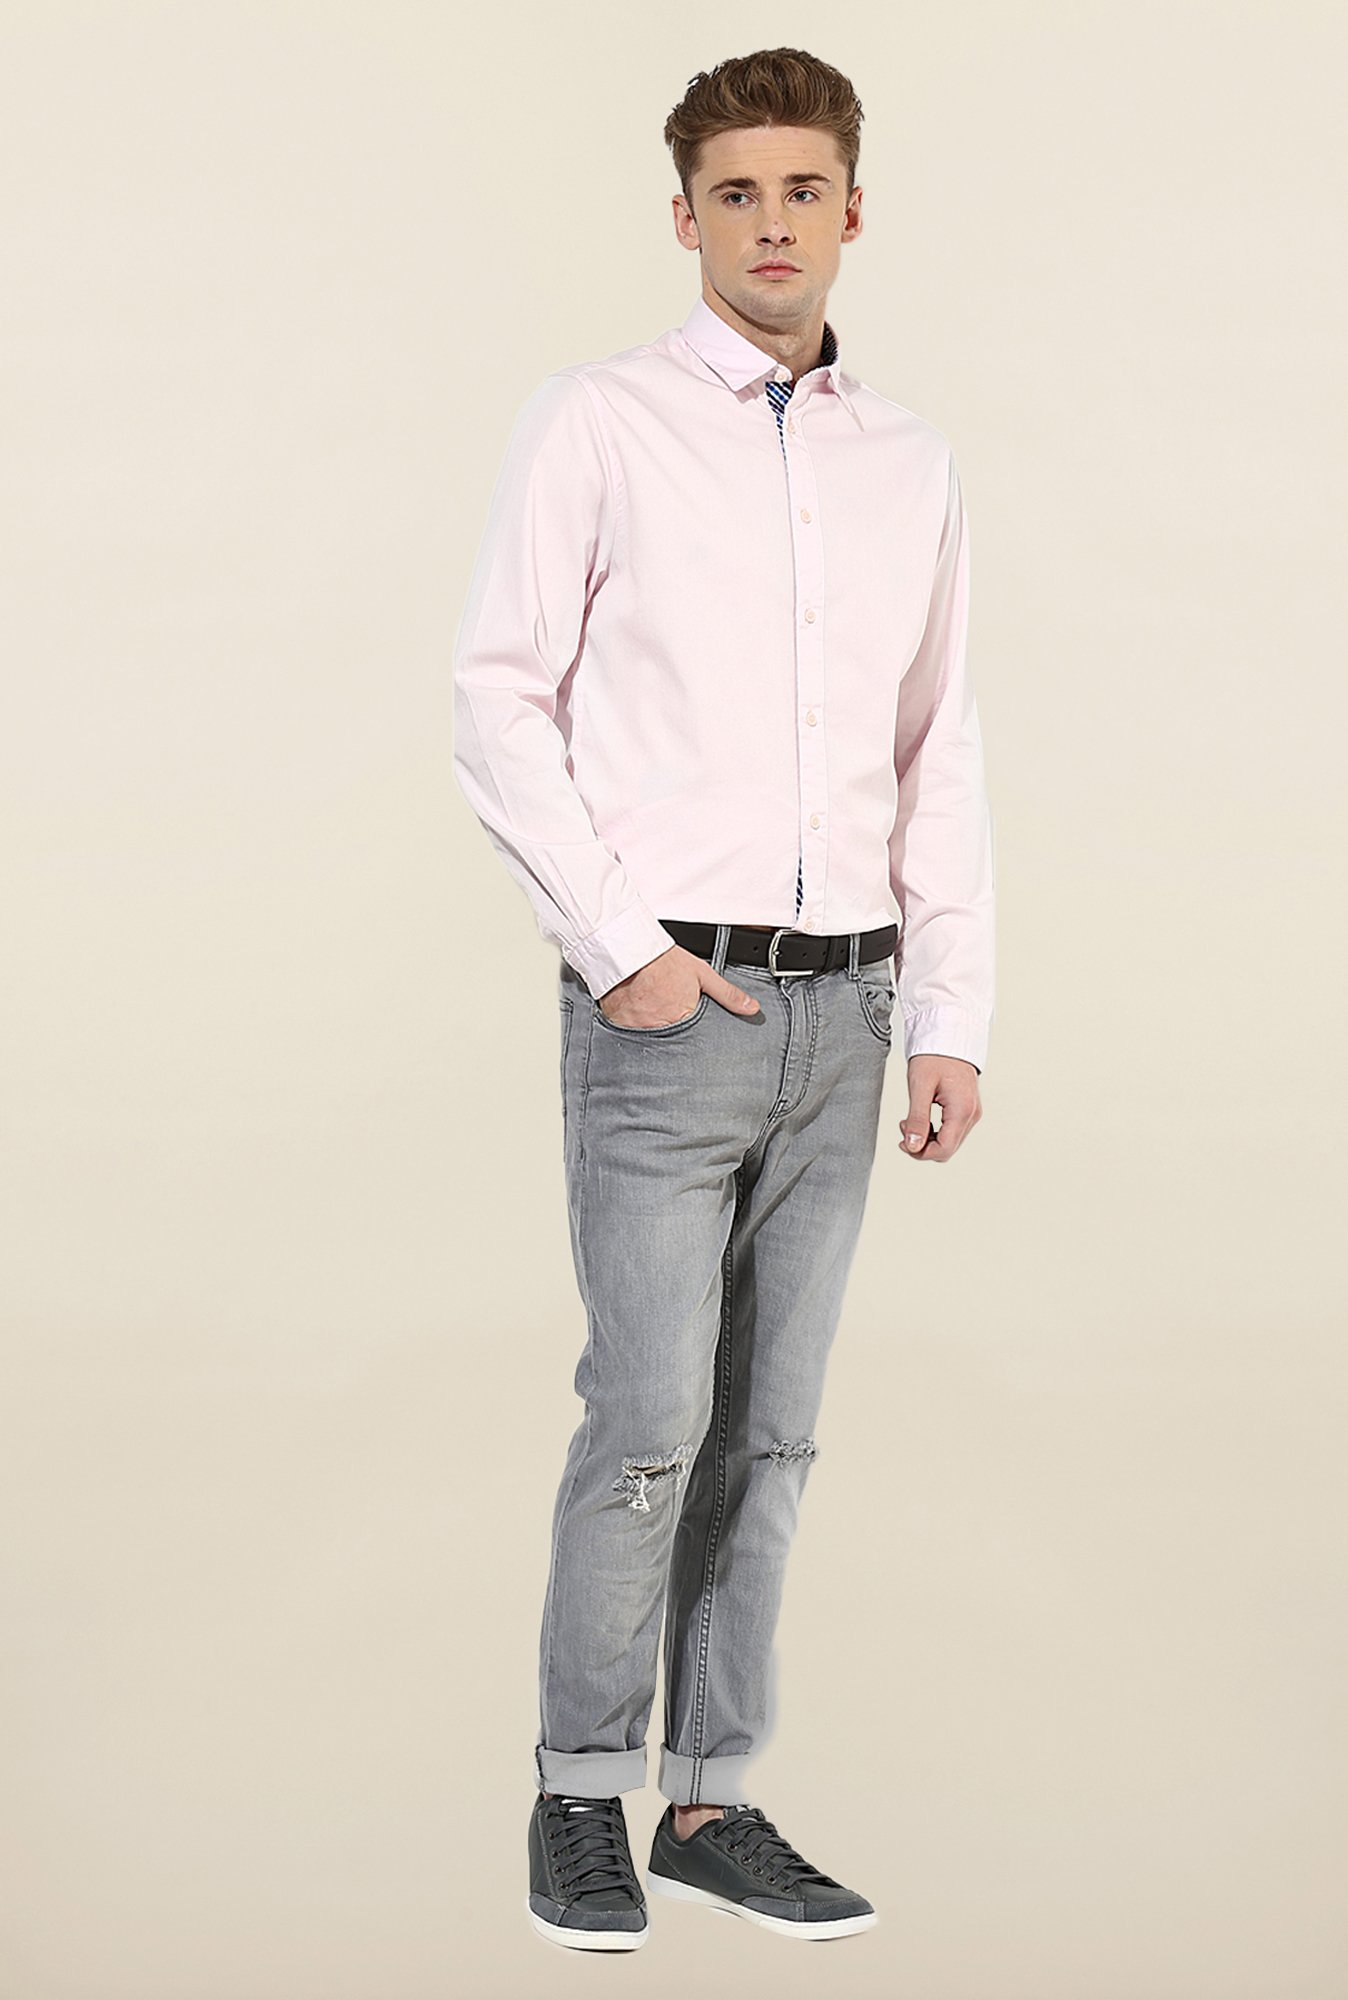 Jack & Jones Pink Solid Cotton Casual Shirt